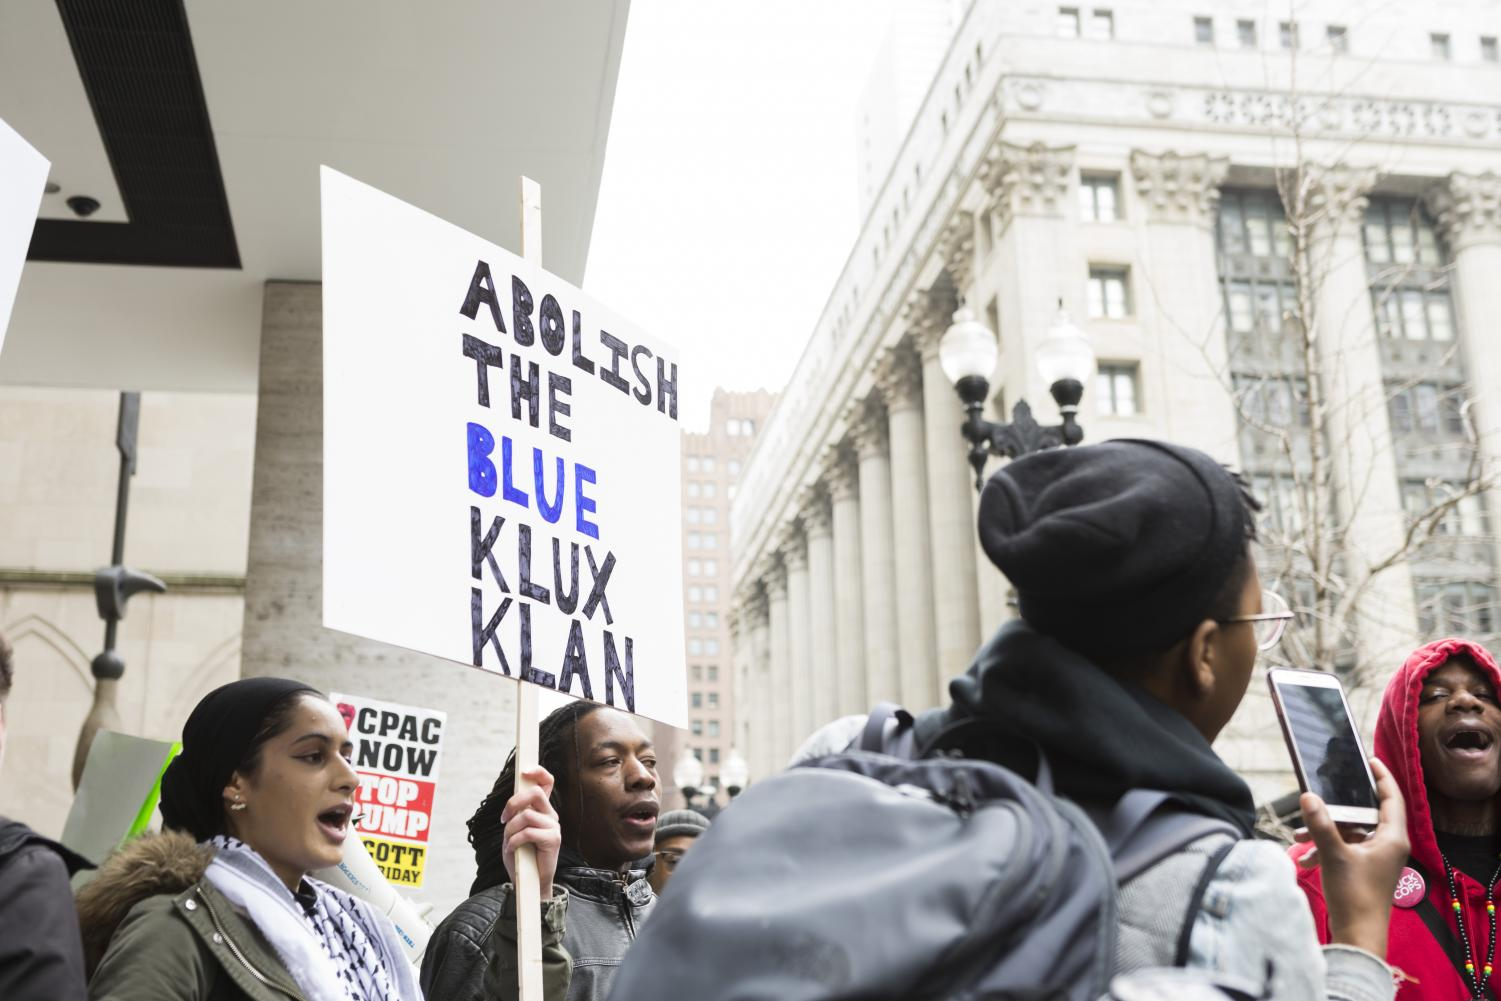 Counter-protestors+from+Black+Lives+Matter+Chicago+and+other+local+progressive+organizations+clashed+with+FOP+supporters+April+1.